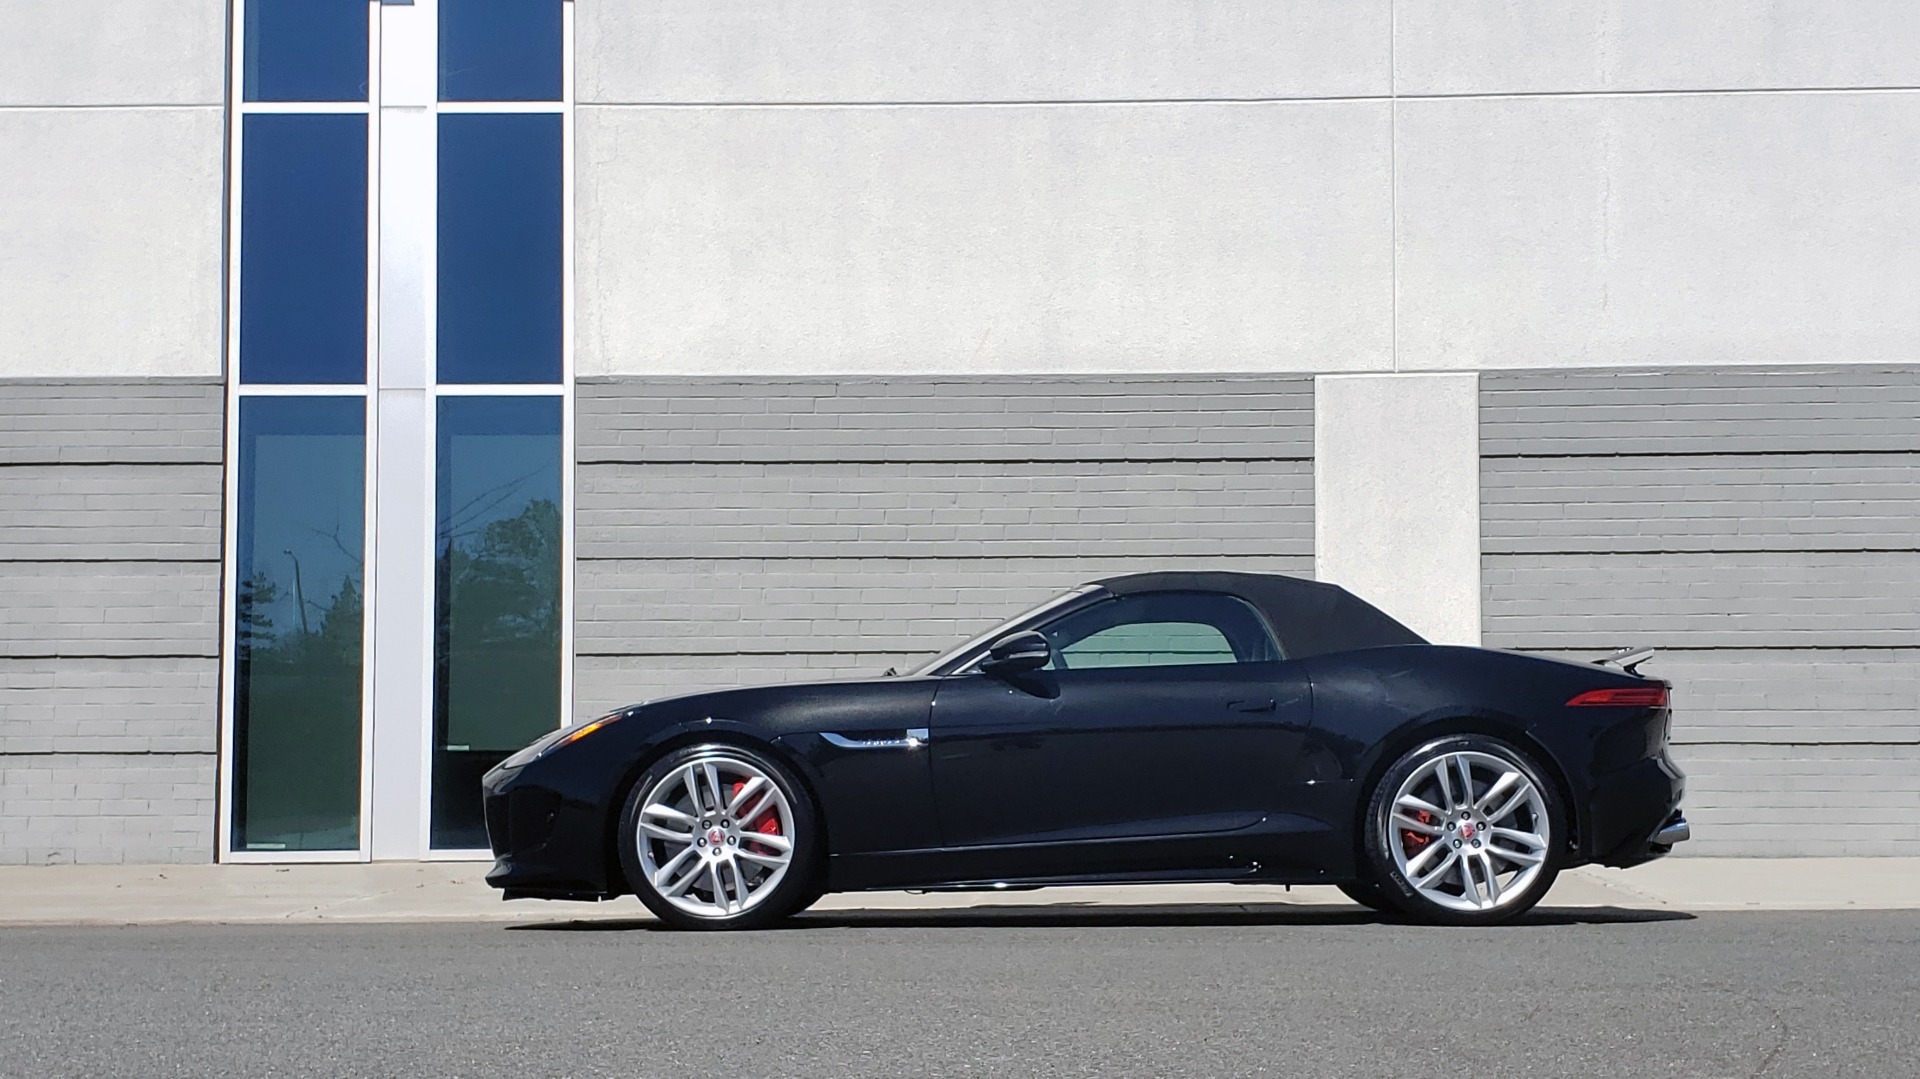 Used 2016 Jaguar F-TYPE R CONVERTIBLE / SC 5.0L 550HP / VISION PACK 3 / BSM / REARVIEW for sale $63,000 at Formula Imports in Charlotte NC 28227 7